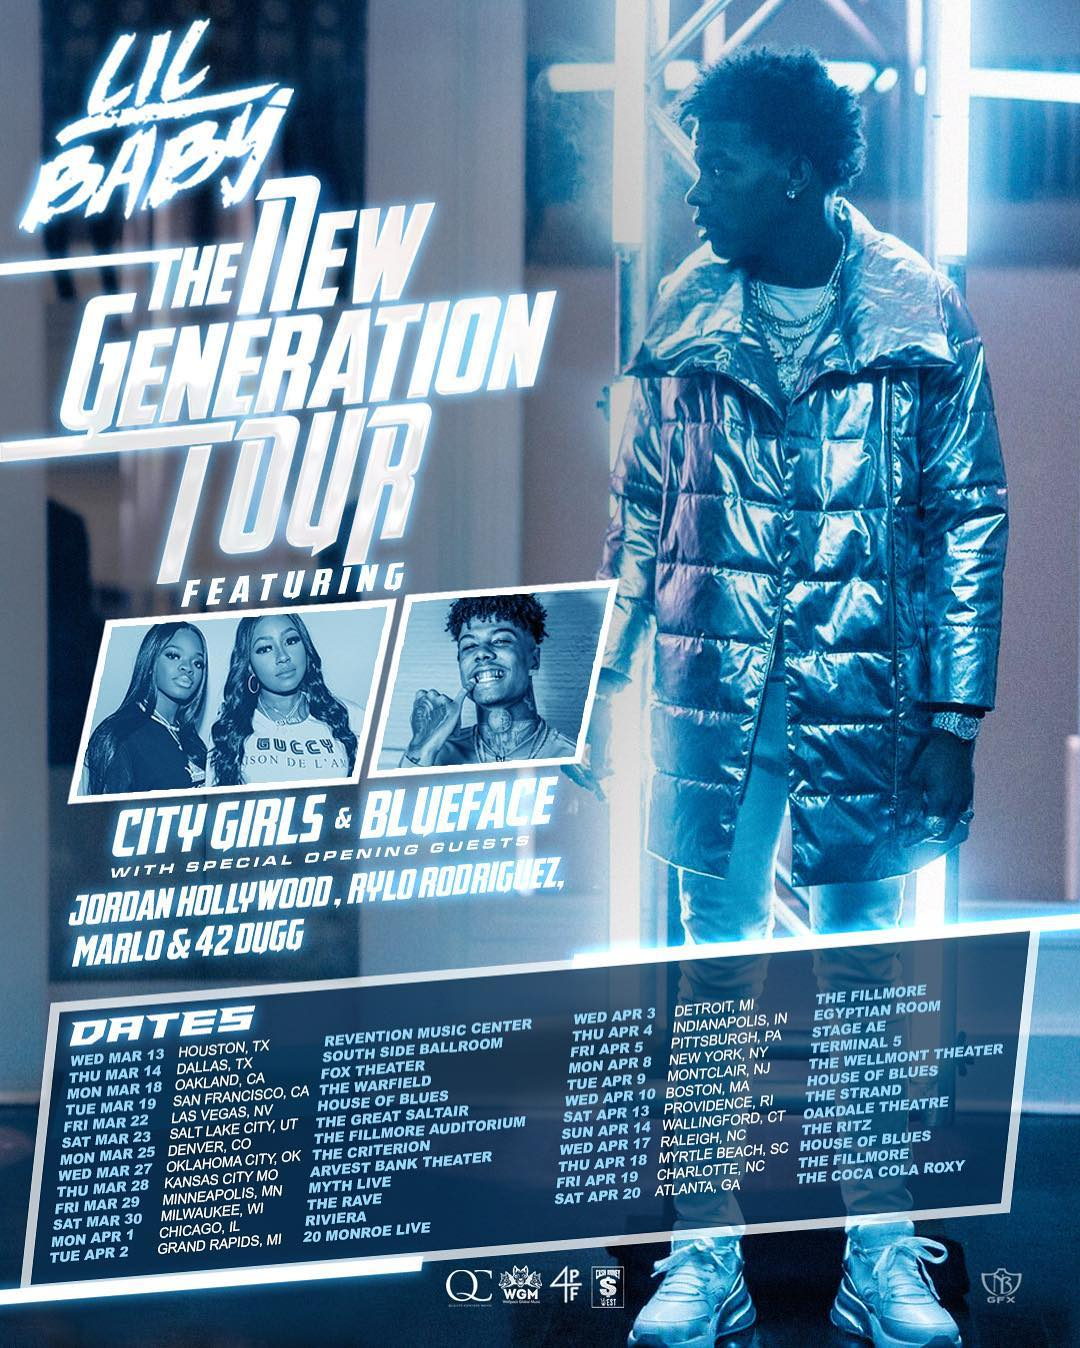 Lil' Baby Announces 'The New Generation Tour' Featuring City Girls, Blueface, Jordan Hollywood and More